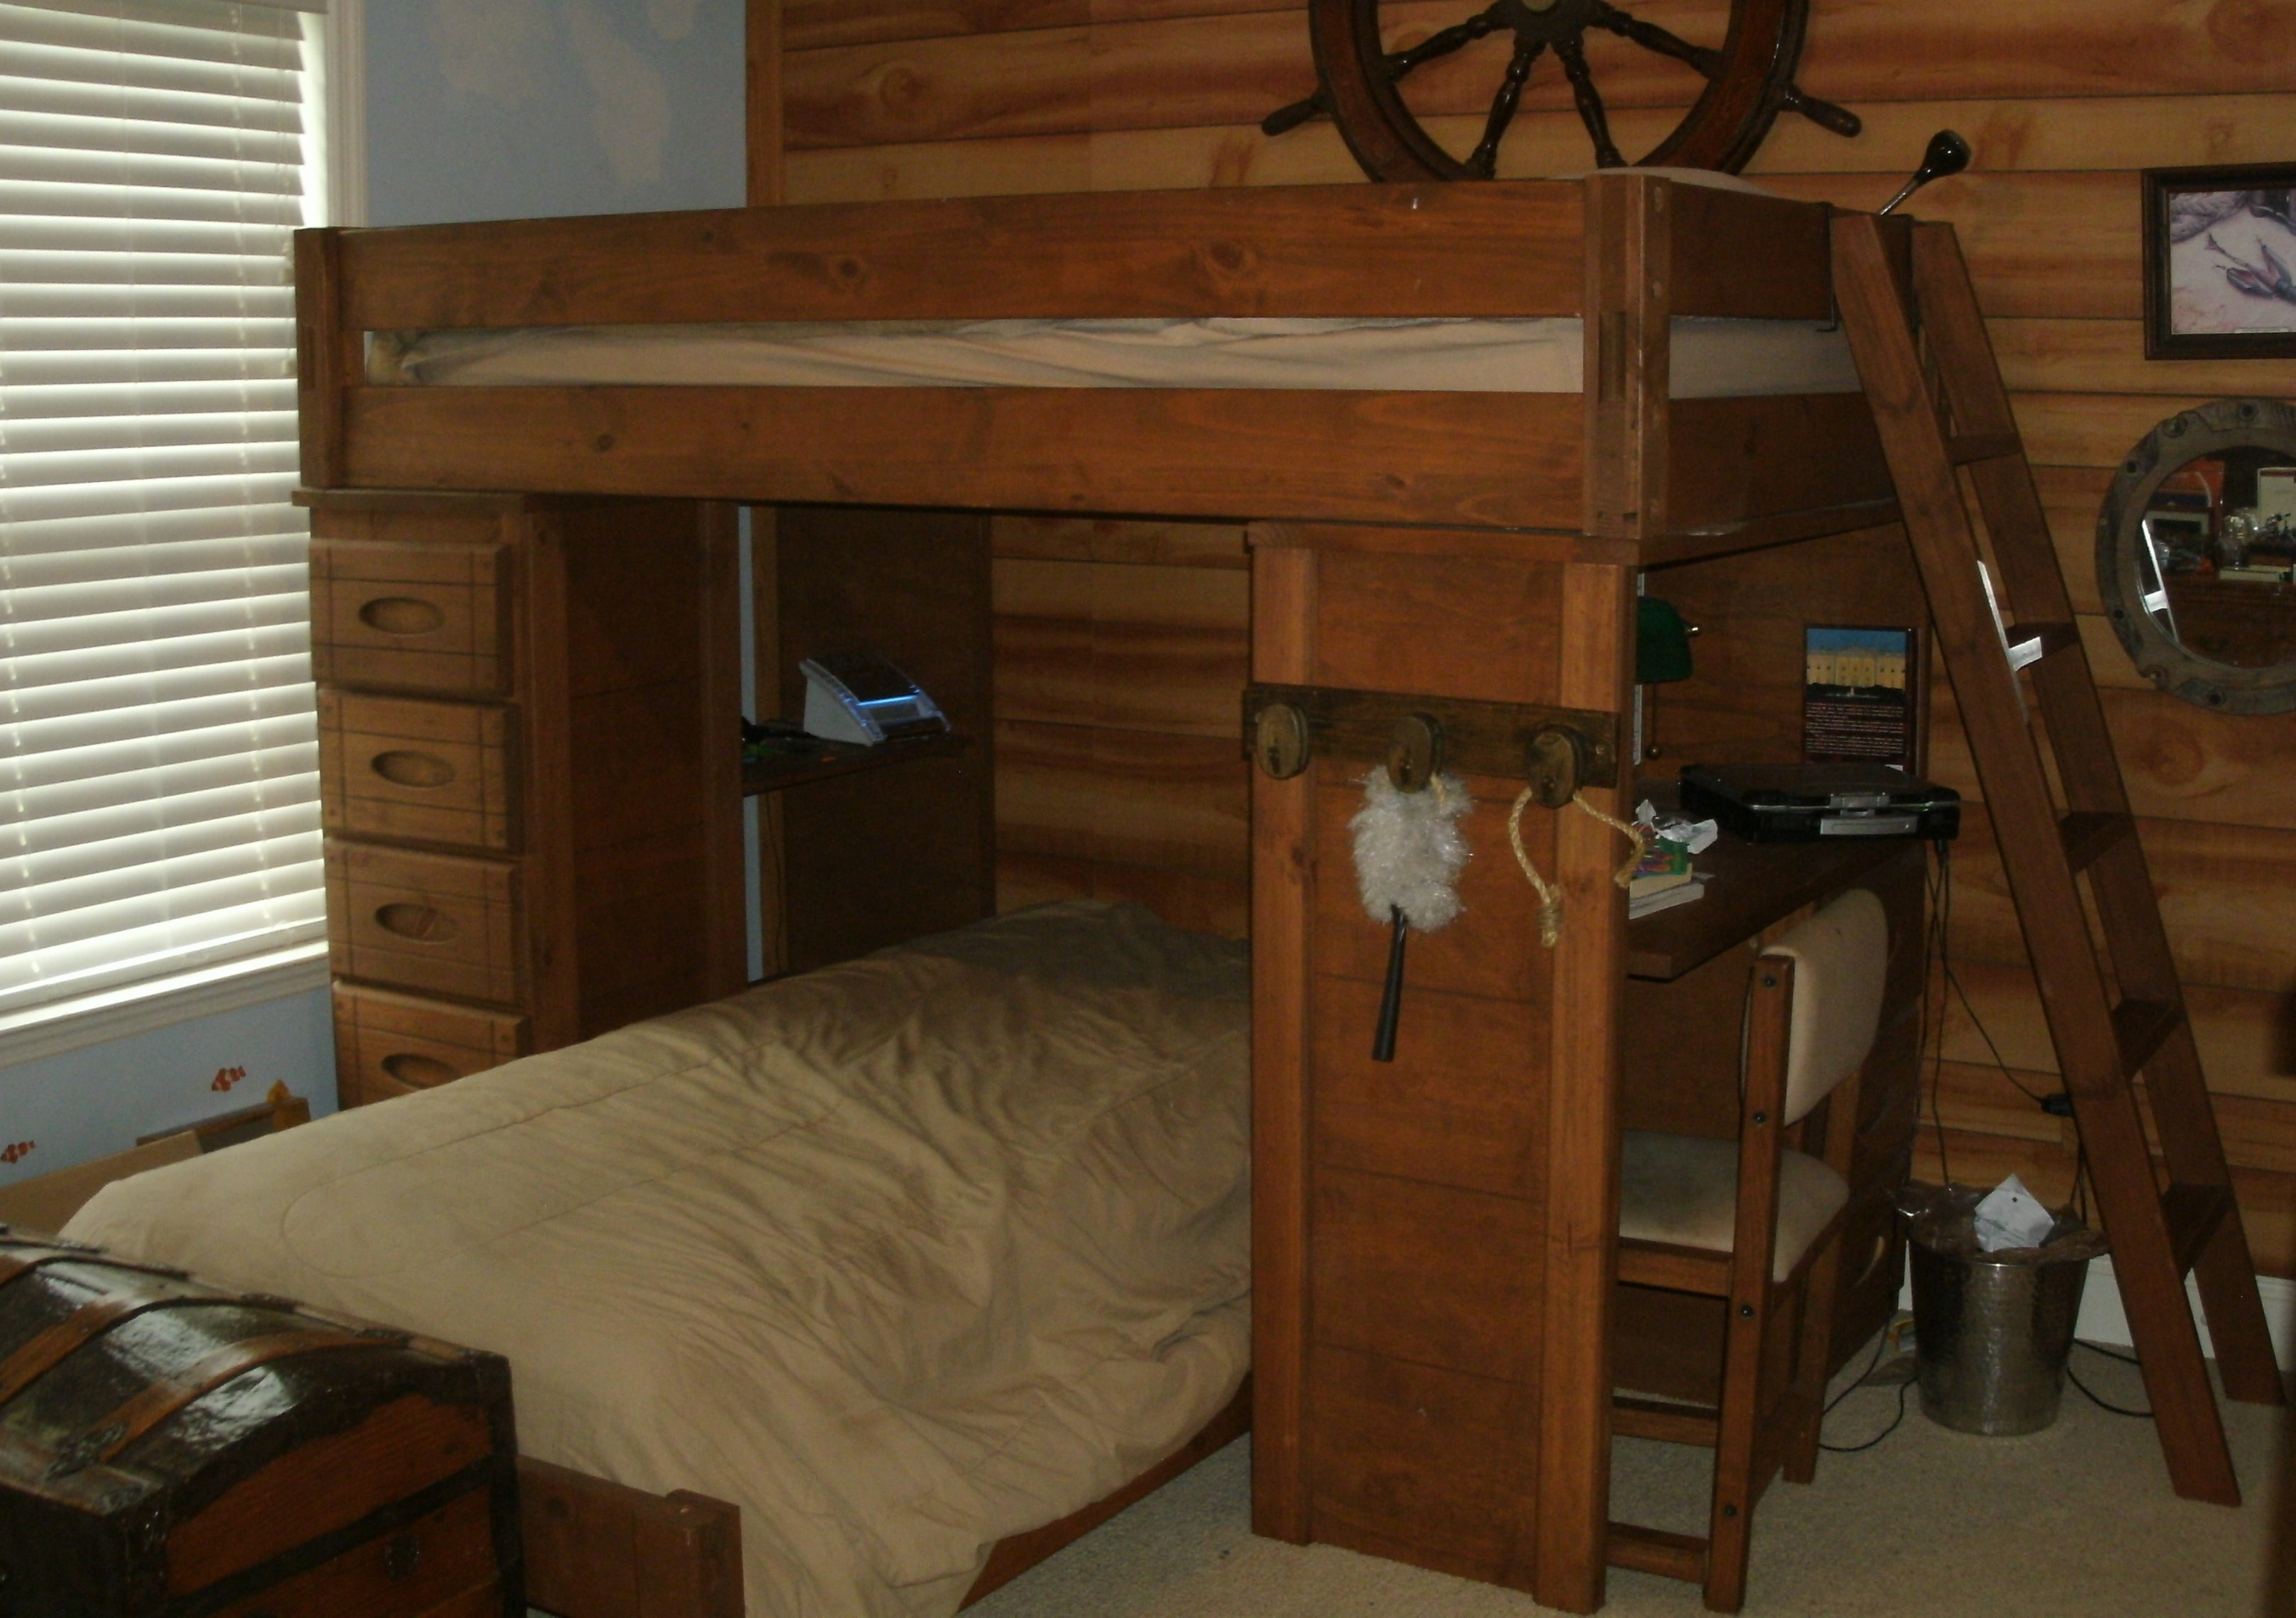 Wood Bunk Bed with Desk for Sale 3238 x 2282